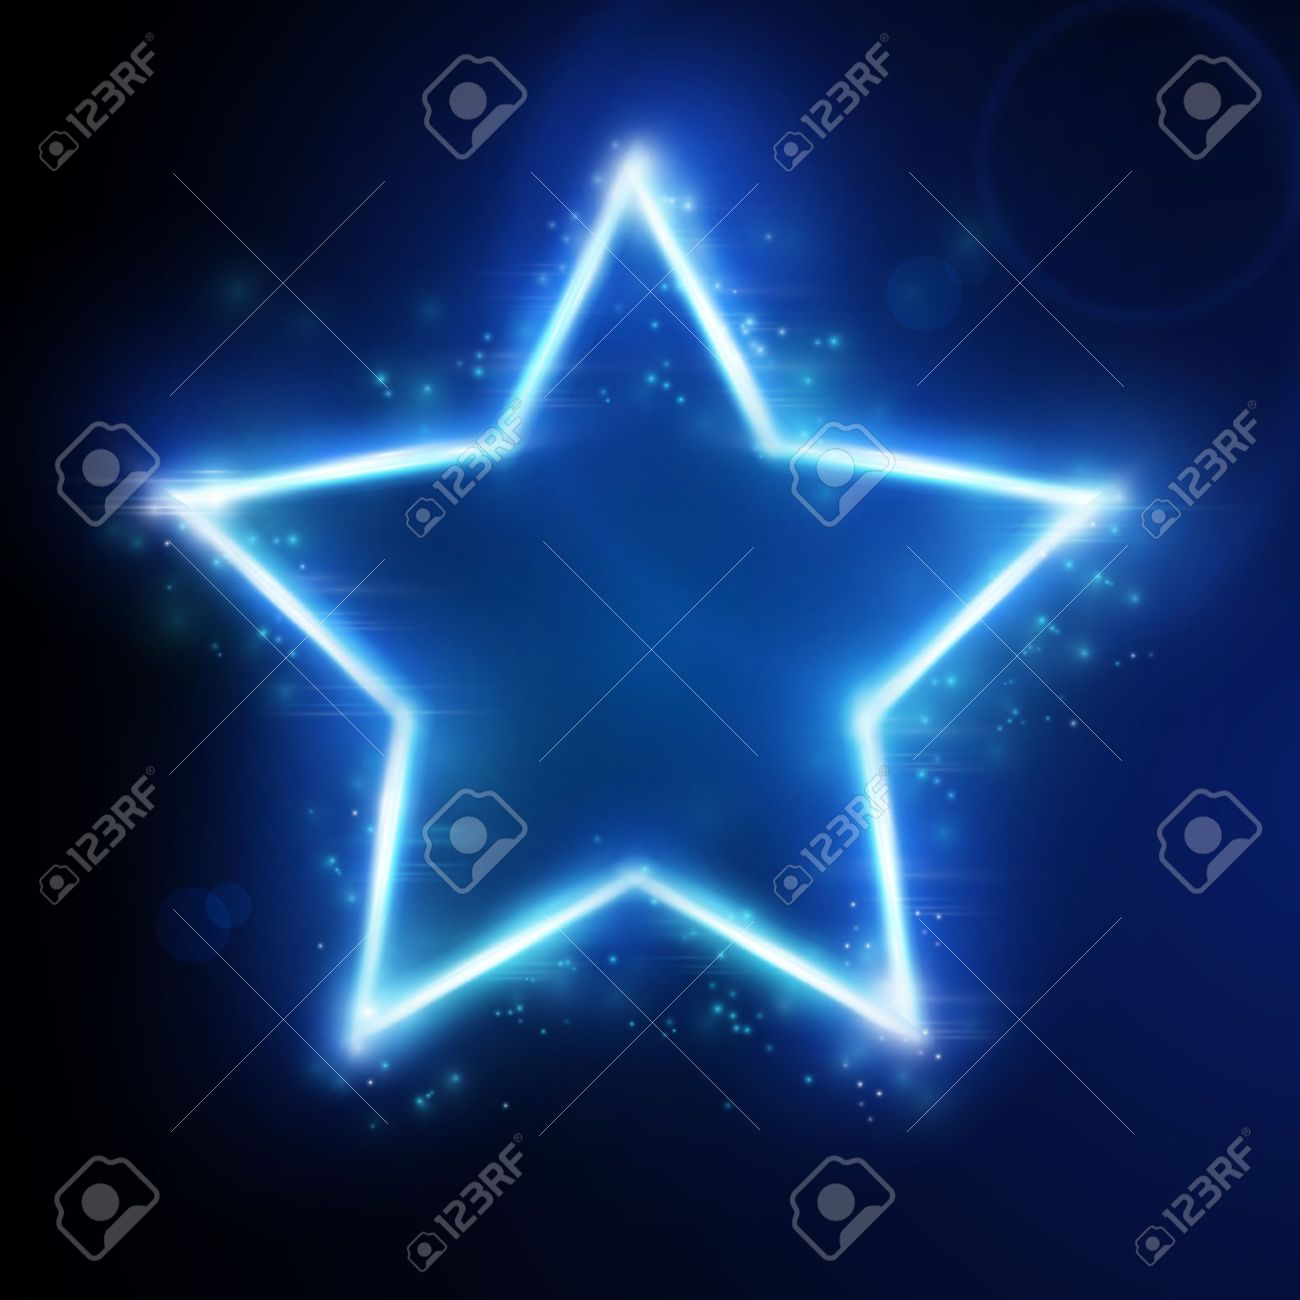 Blue star frame on dark background with space for your text. Light effects give it a glow and sparkle. Stock Vector - 11337177